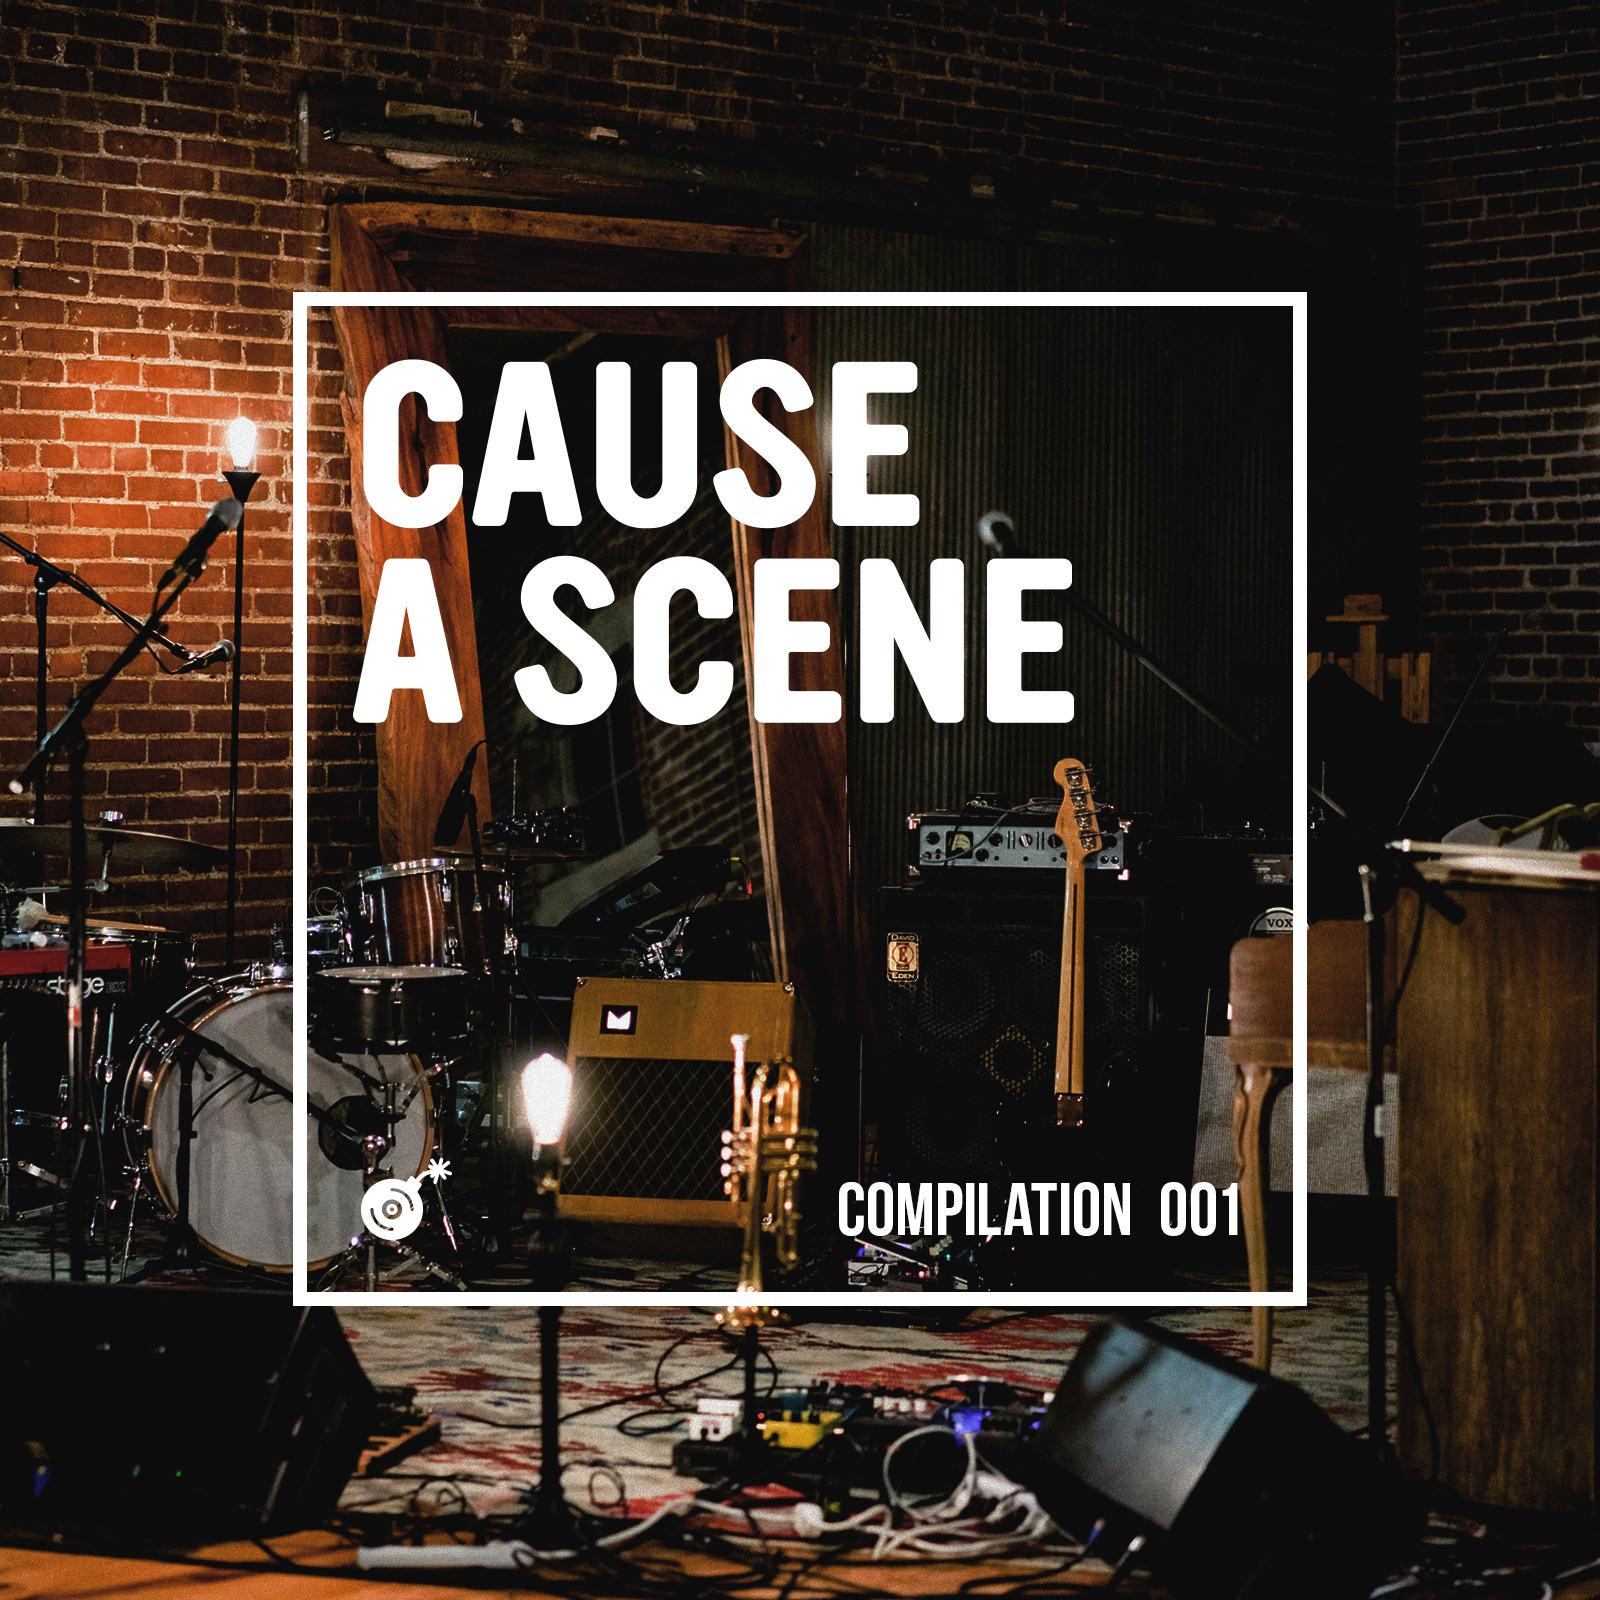 Cause A Scene Compilation - Album Artwork